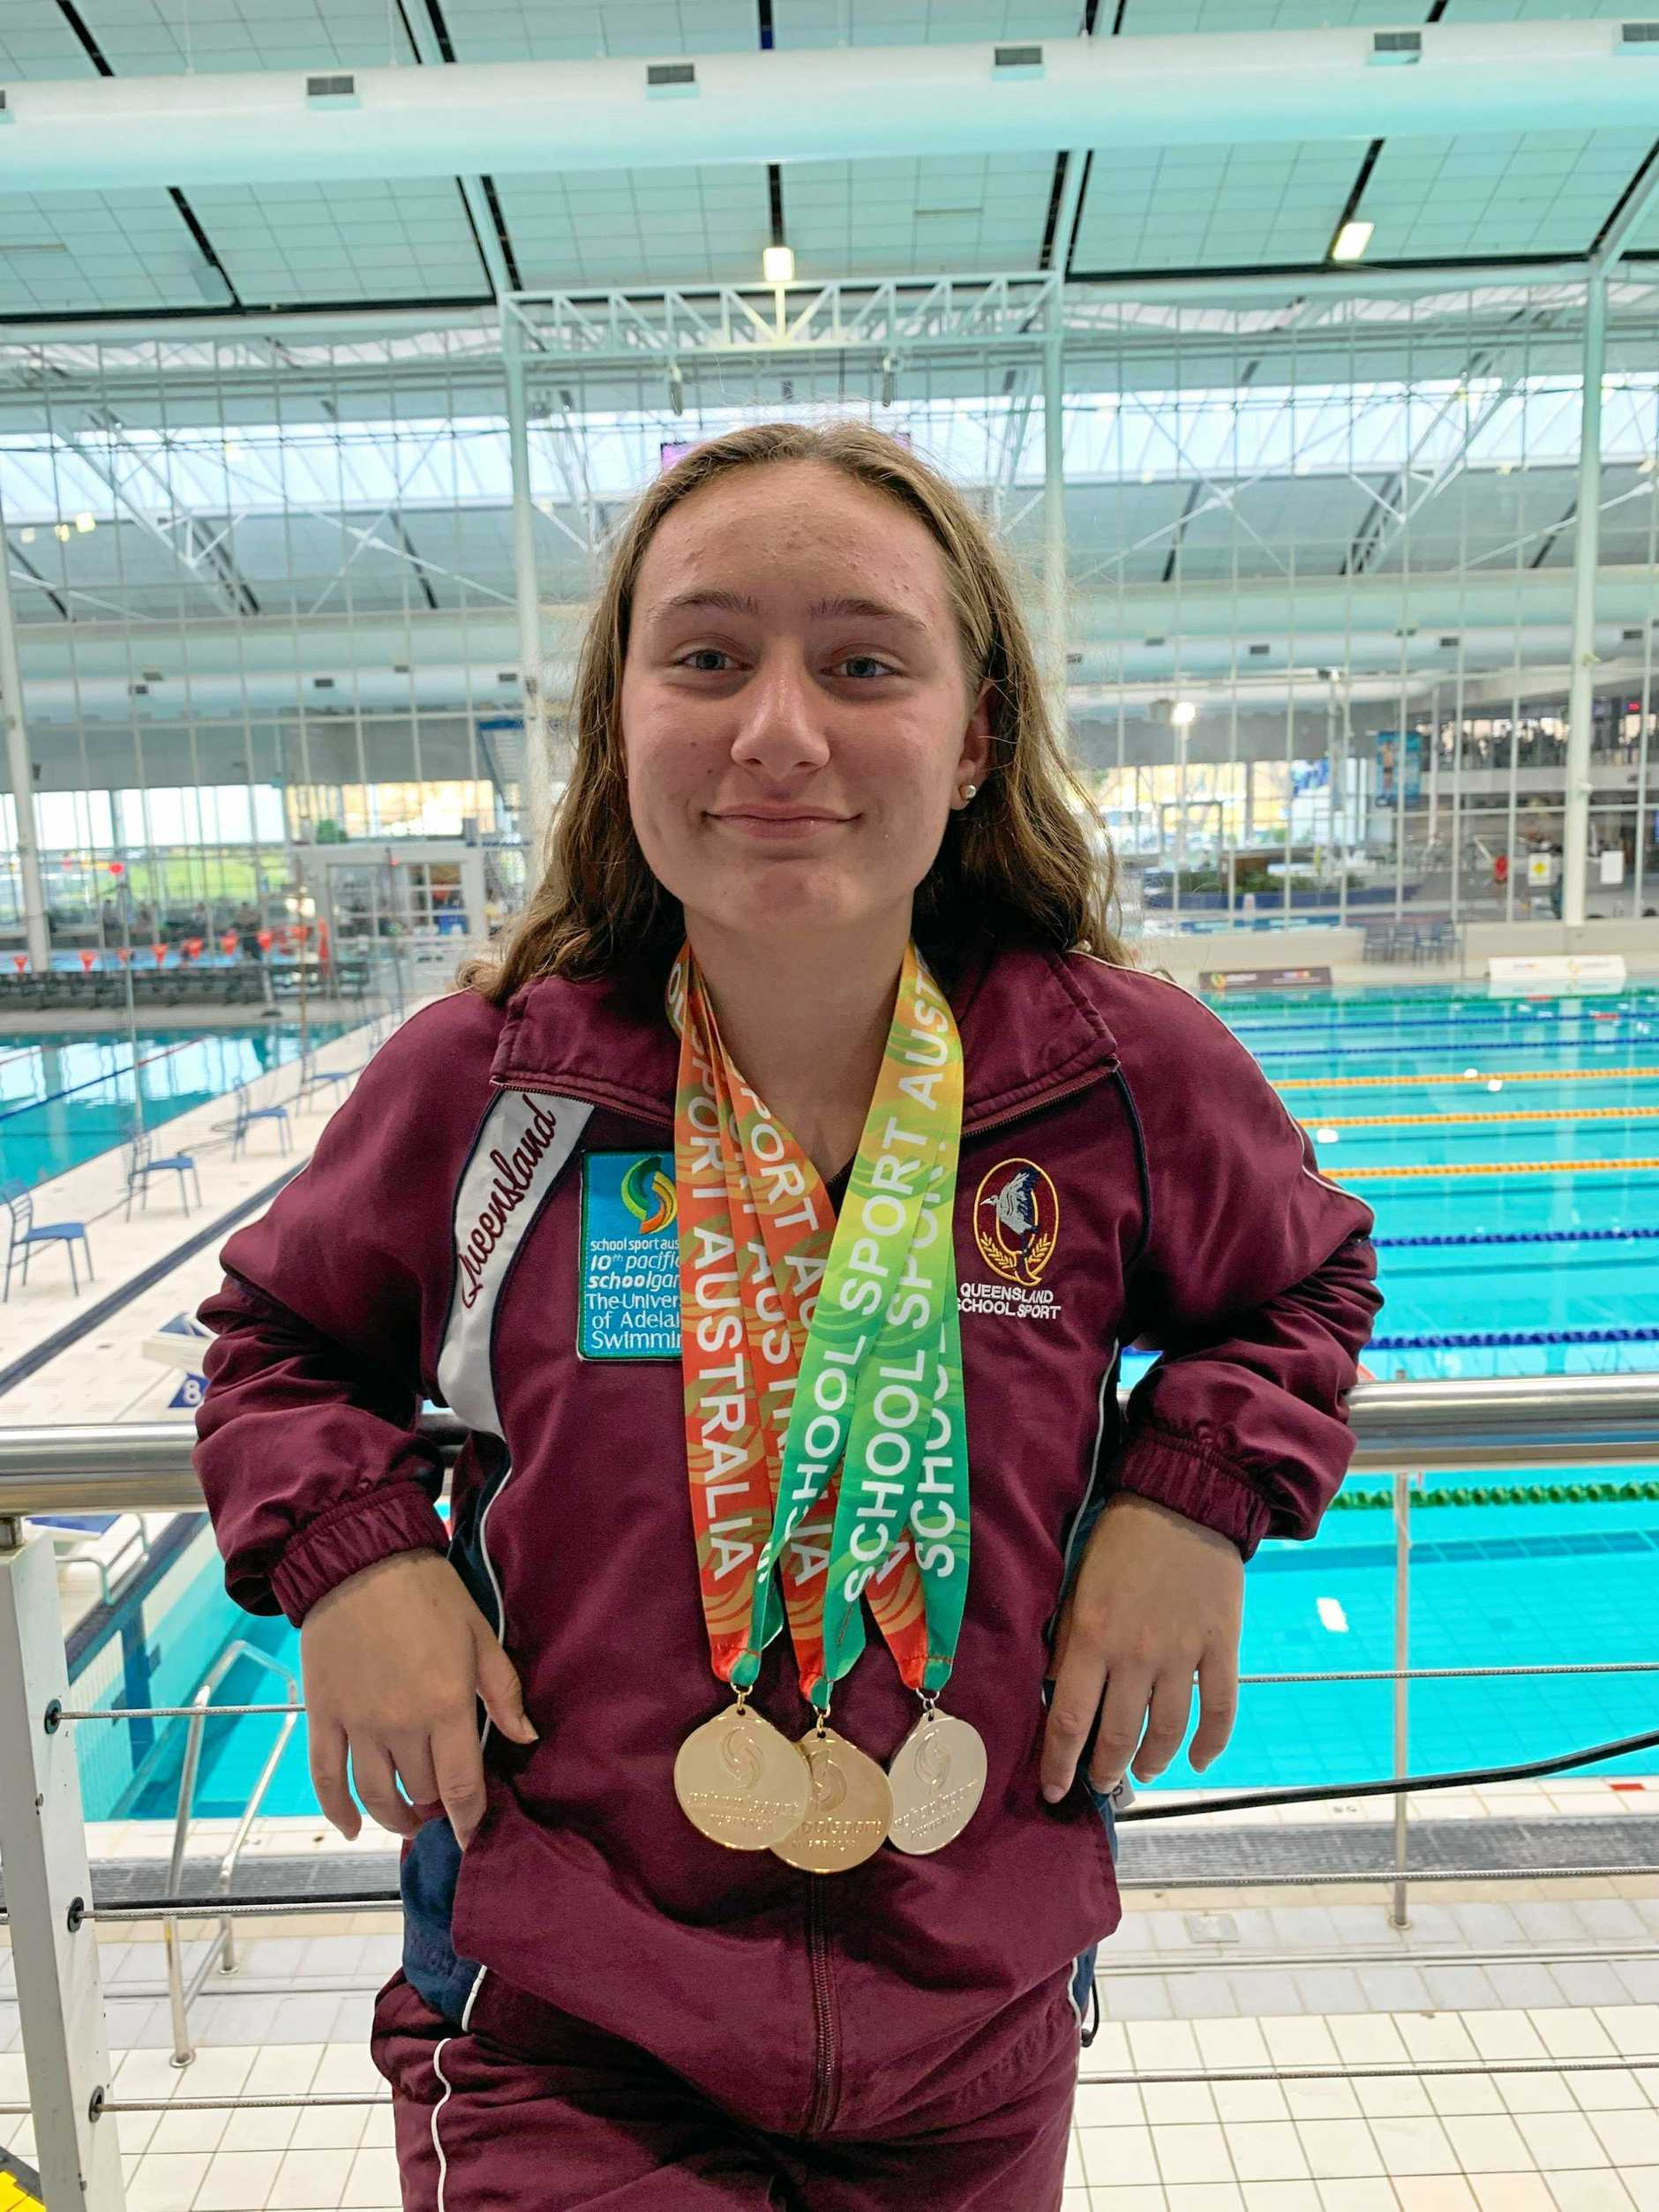 UNSTOPPABLE: The success just keeps coming for Waterworx and Queensland swimmer Mercedes Siganto who bagged yet another impressive medal haul at the School Sport Australian Championships.